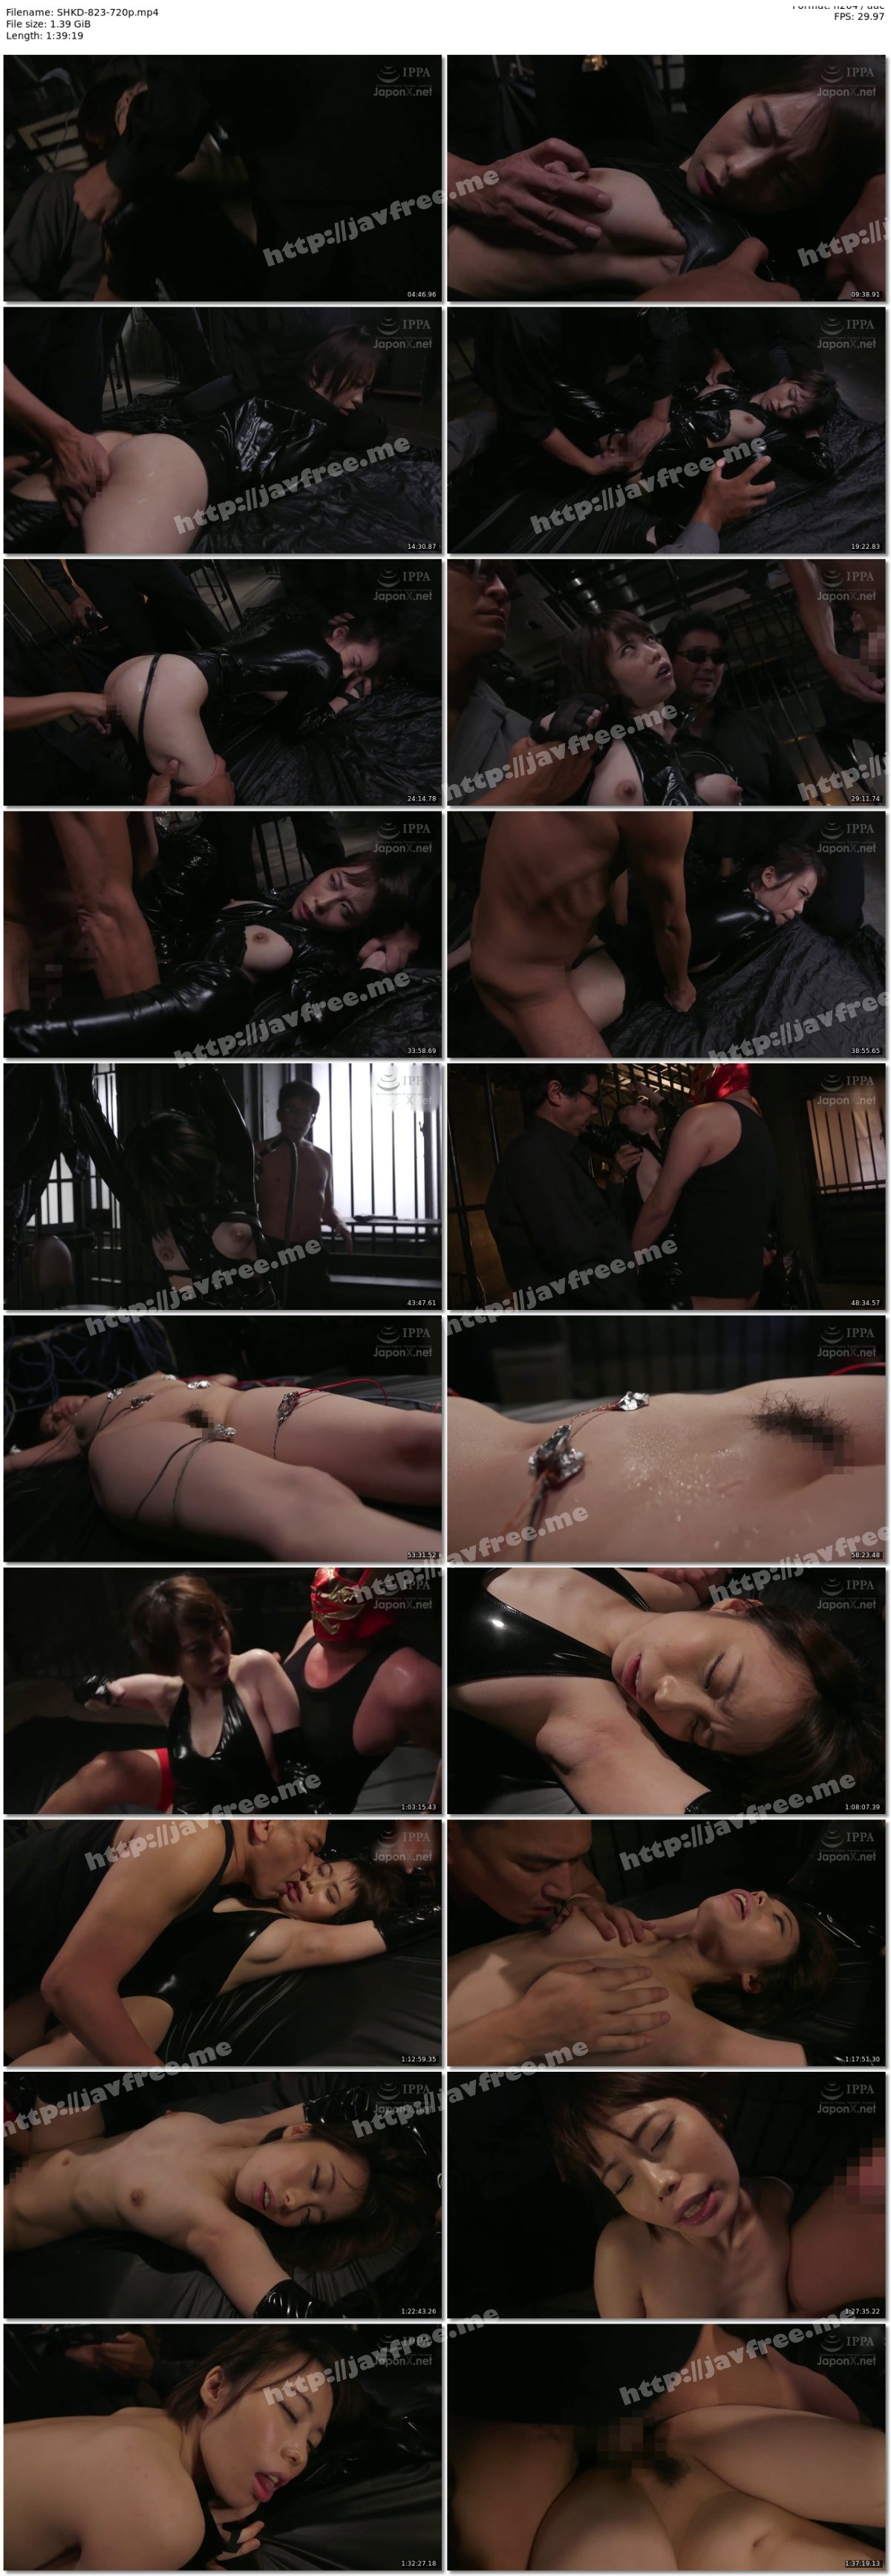 [HD][SHKD-823] 女スパイ BLACK SPARROW 川菜美鈴 - image SHKD-823-720p on https://javfree.me